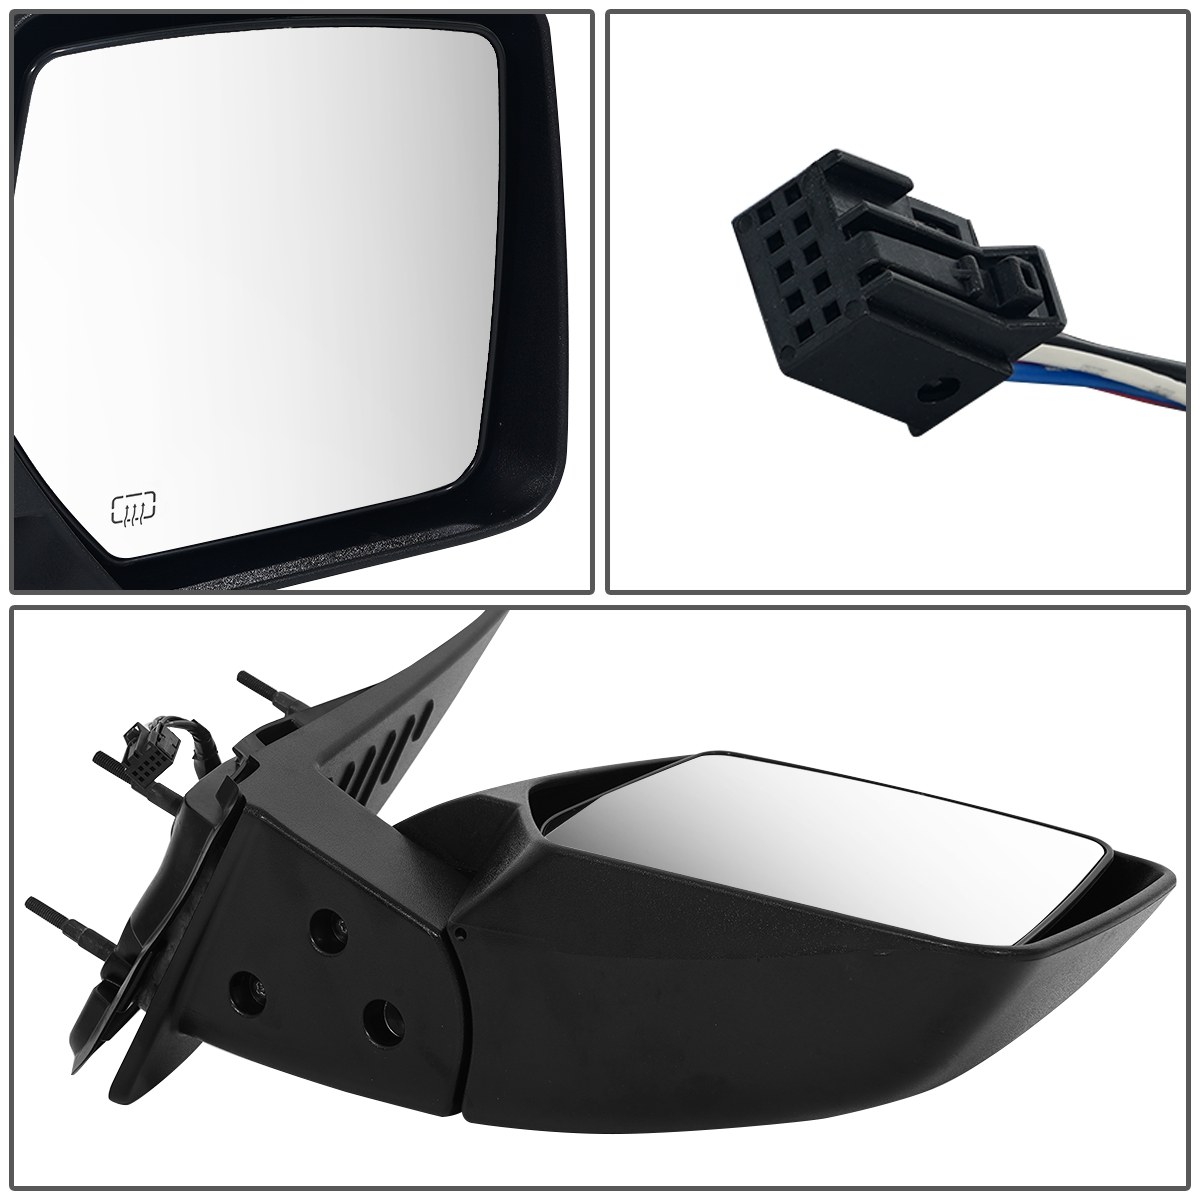 Passenger Side Mirror for SEBRING SDN 07-09 PWR W//O FLD N-HT MIRROR RH | Right Outside Rear View Mirror OE: CH1321316 Parts Link #: 4657002AA PTM